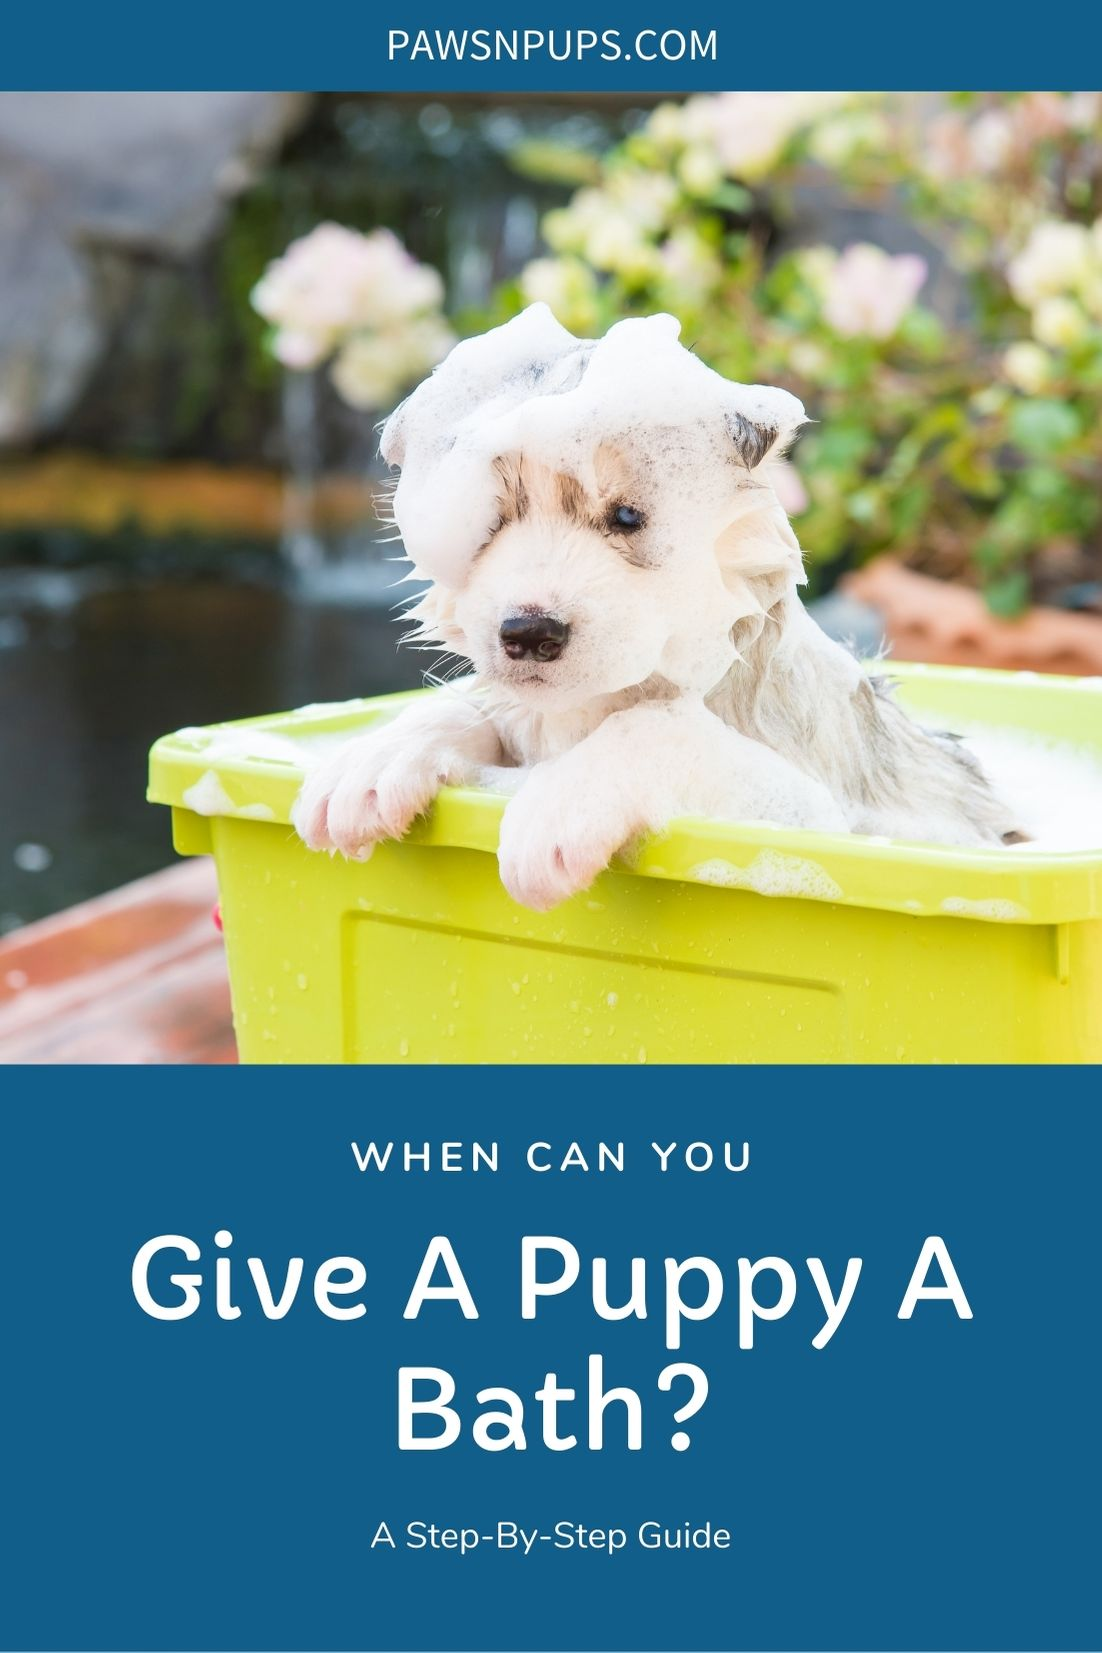 When Can You Give A Puppy A Bath - A Step-by-Step Guide - Puppy taking a bath in yellow tub covered in soap.